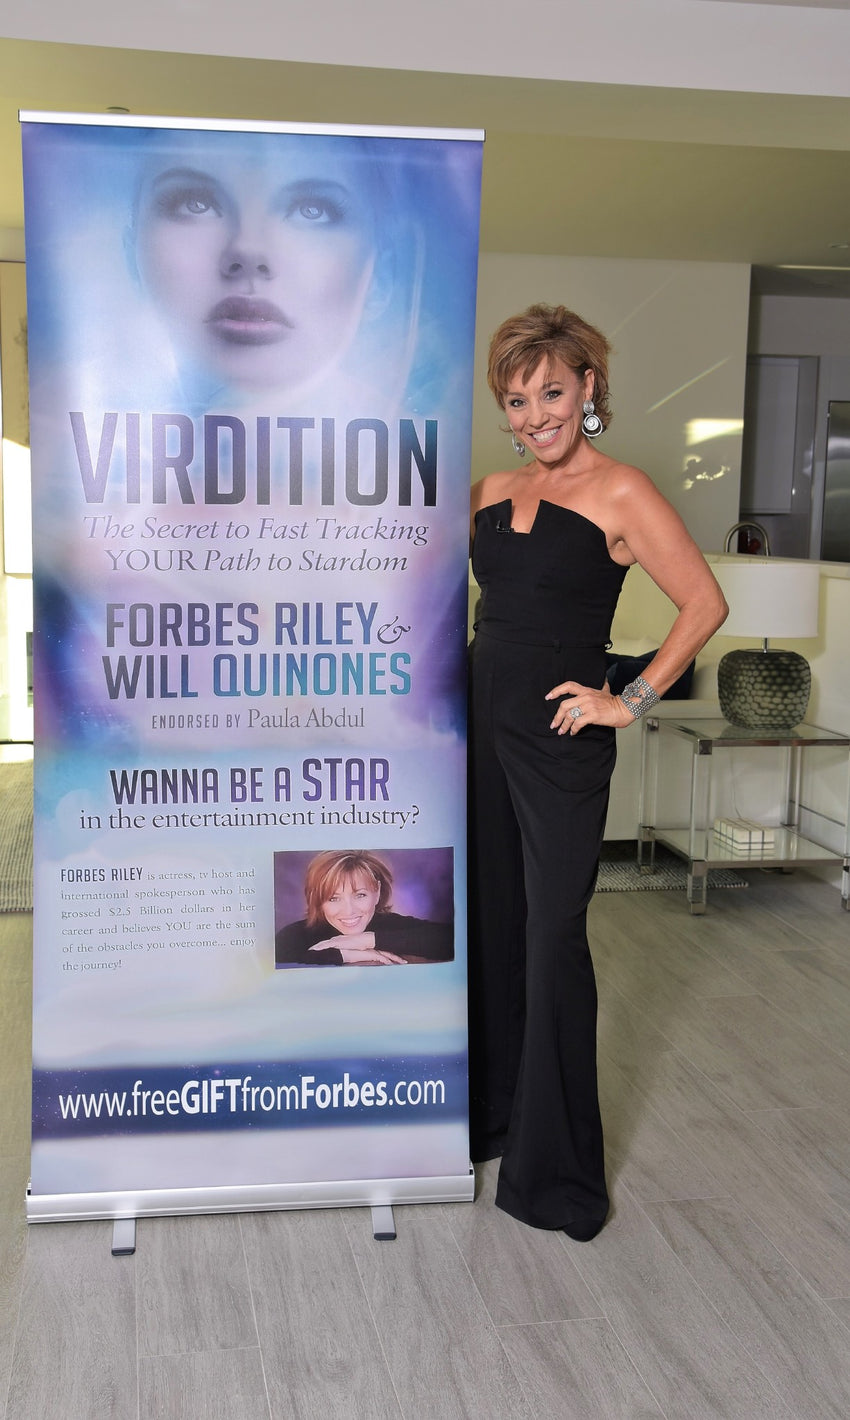 Virdition: Fast Track YOUR Way to Stardom - Shop Forbes Riley